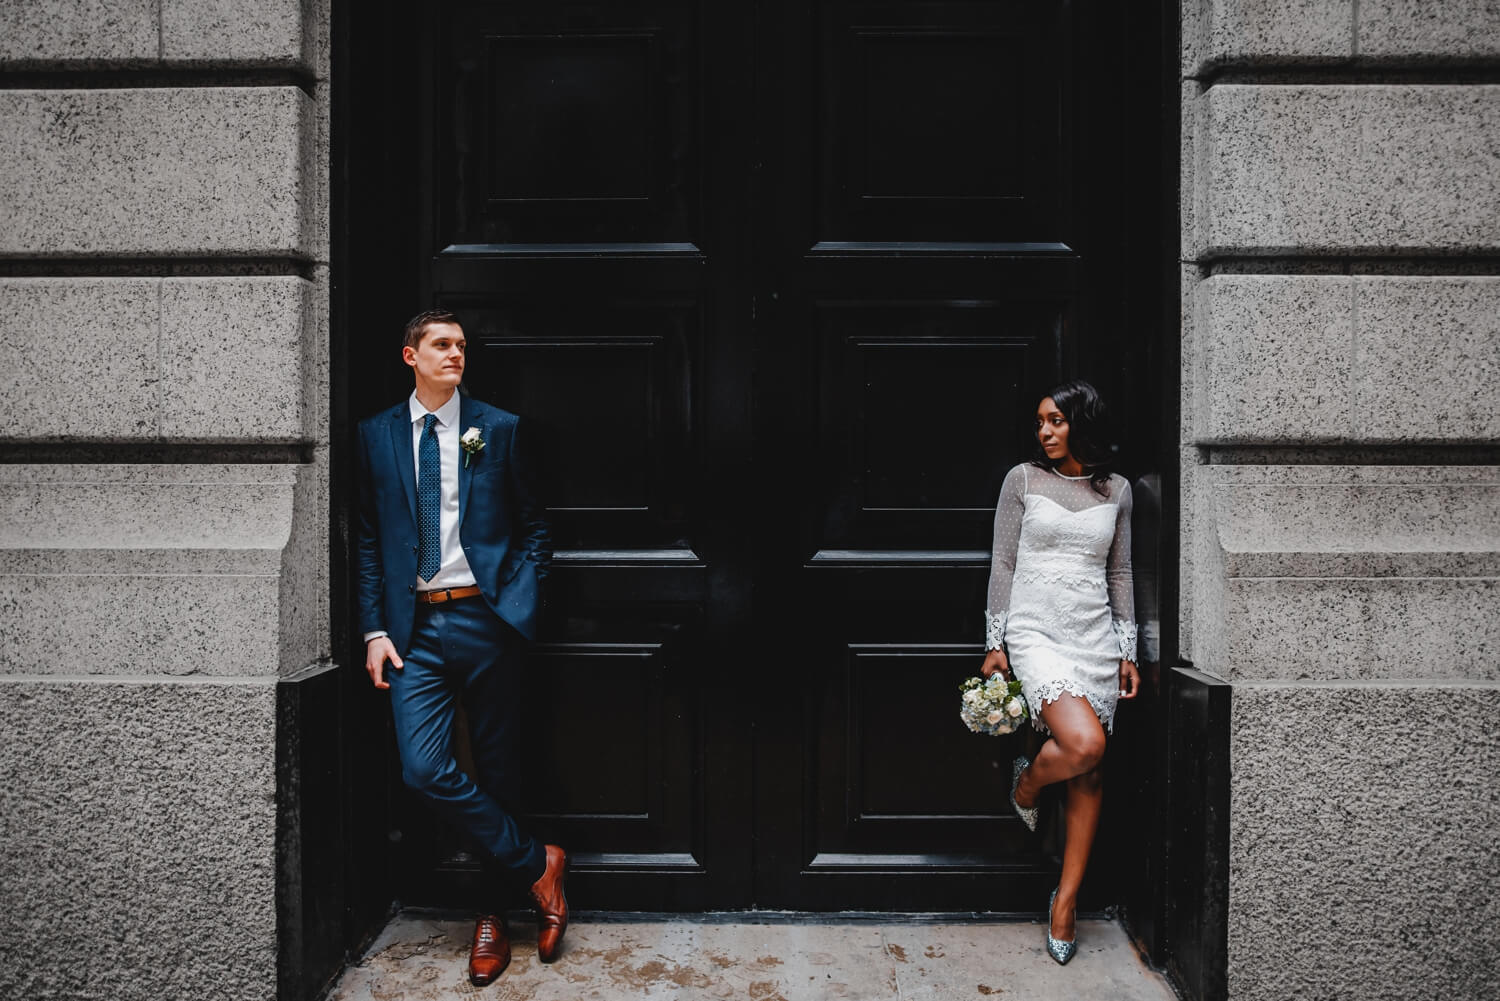 Chicago City Hall Wedding Photographer - The Adamkovi, bride and groom posing as models, mixed couple